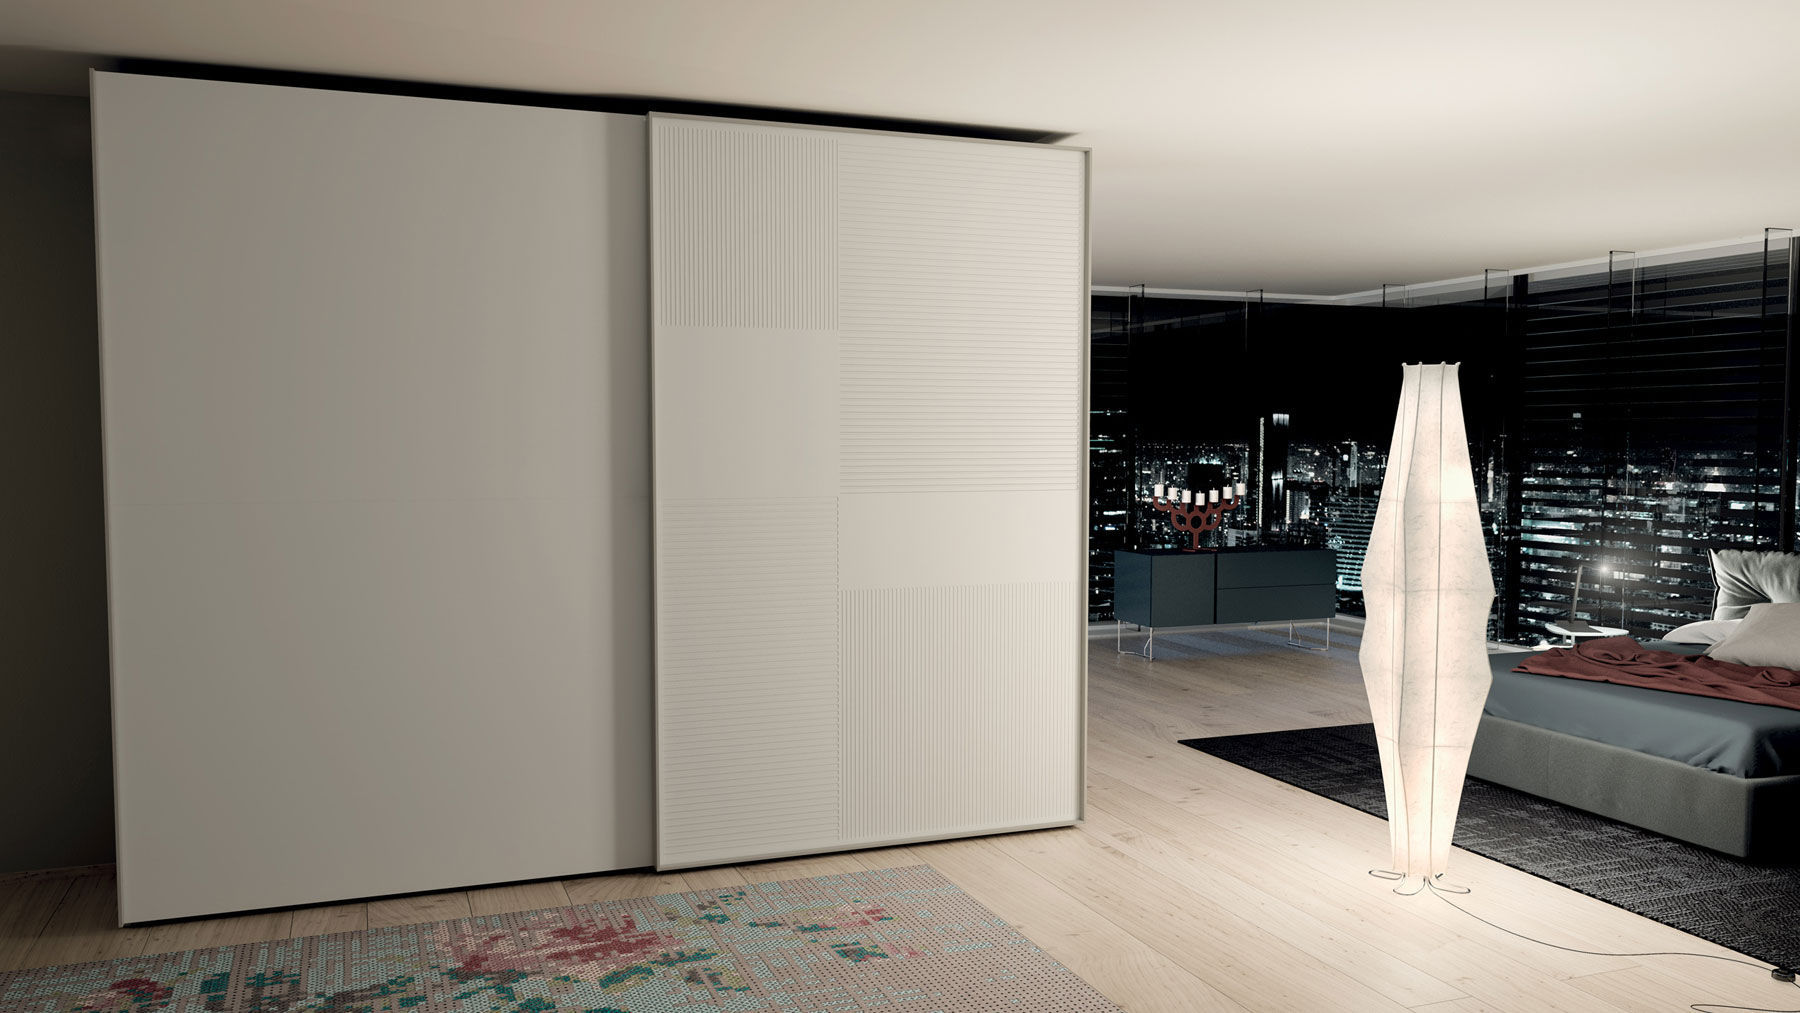 ... contemporary wardrobe / wooden / with sliding door ... & Contemporary wardrobe / wooden / with sliding door - LOOM - CACCARO